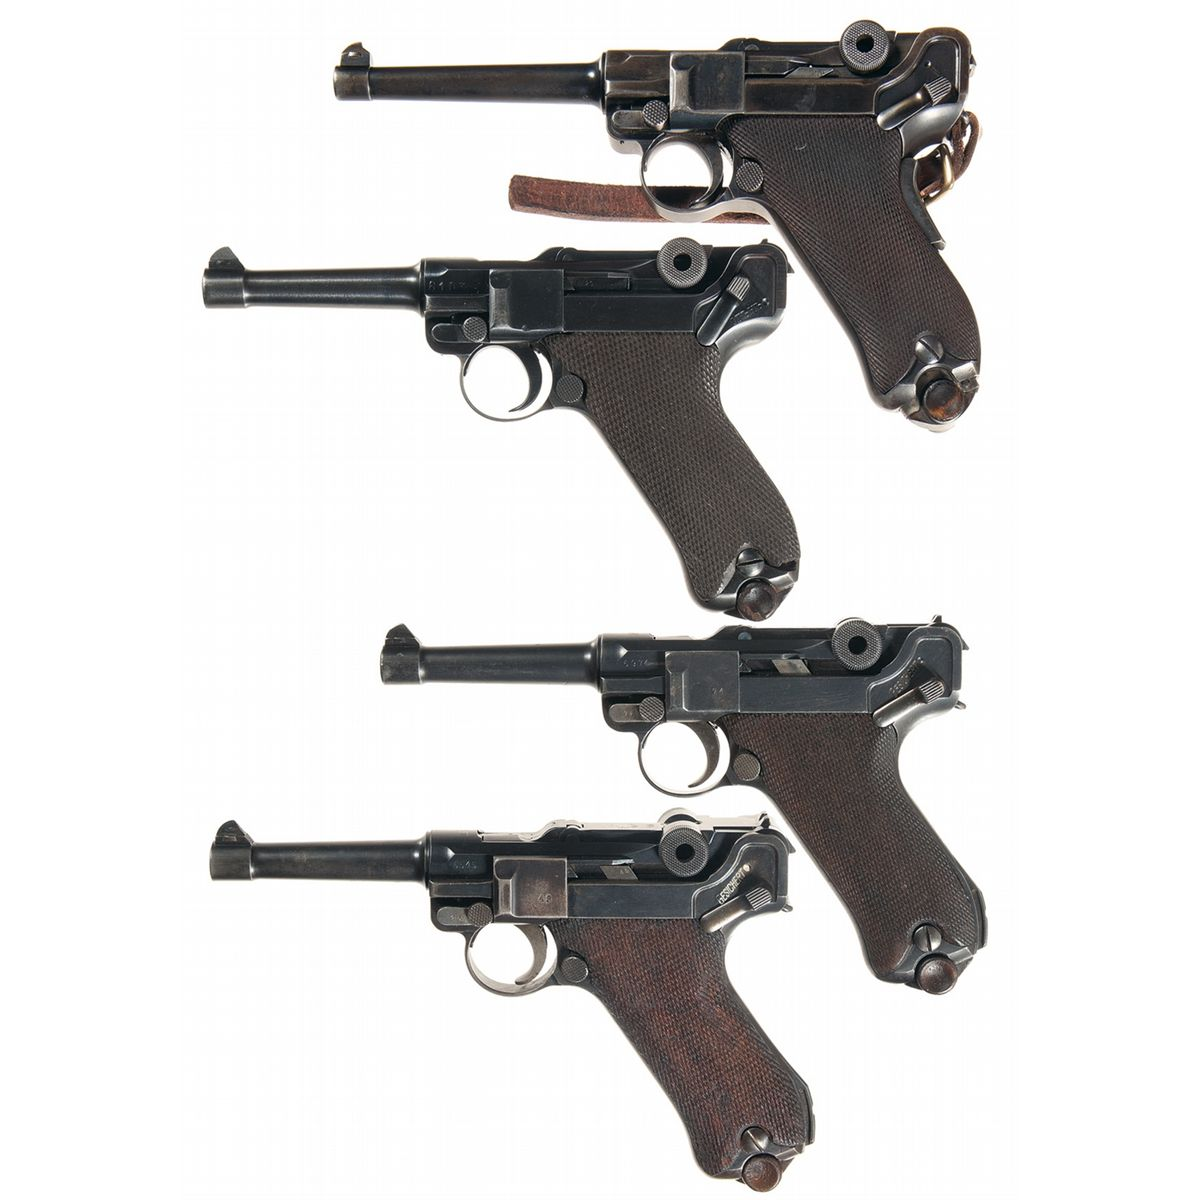 Image result for American Pistols